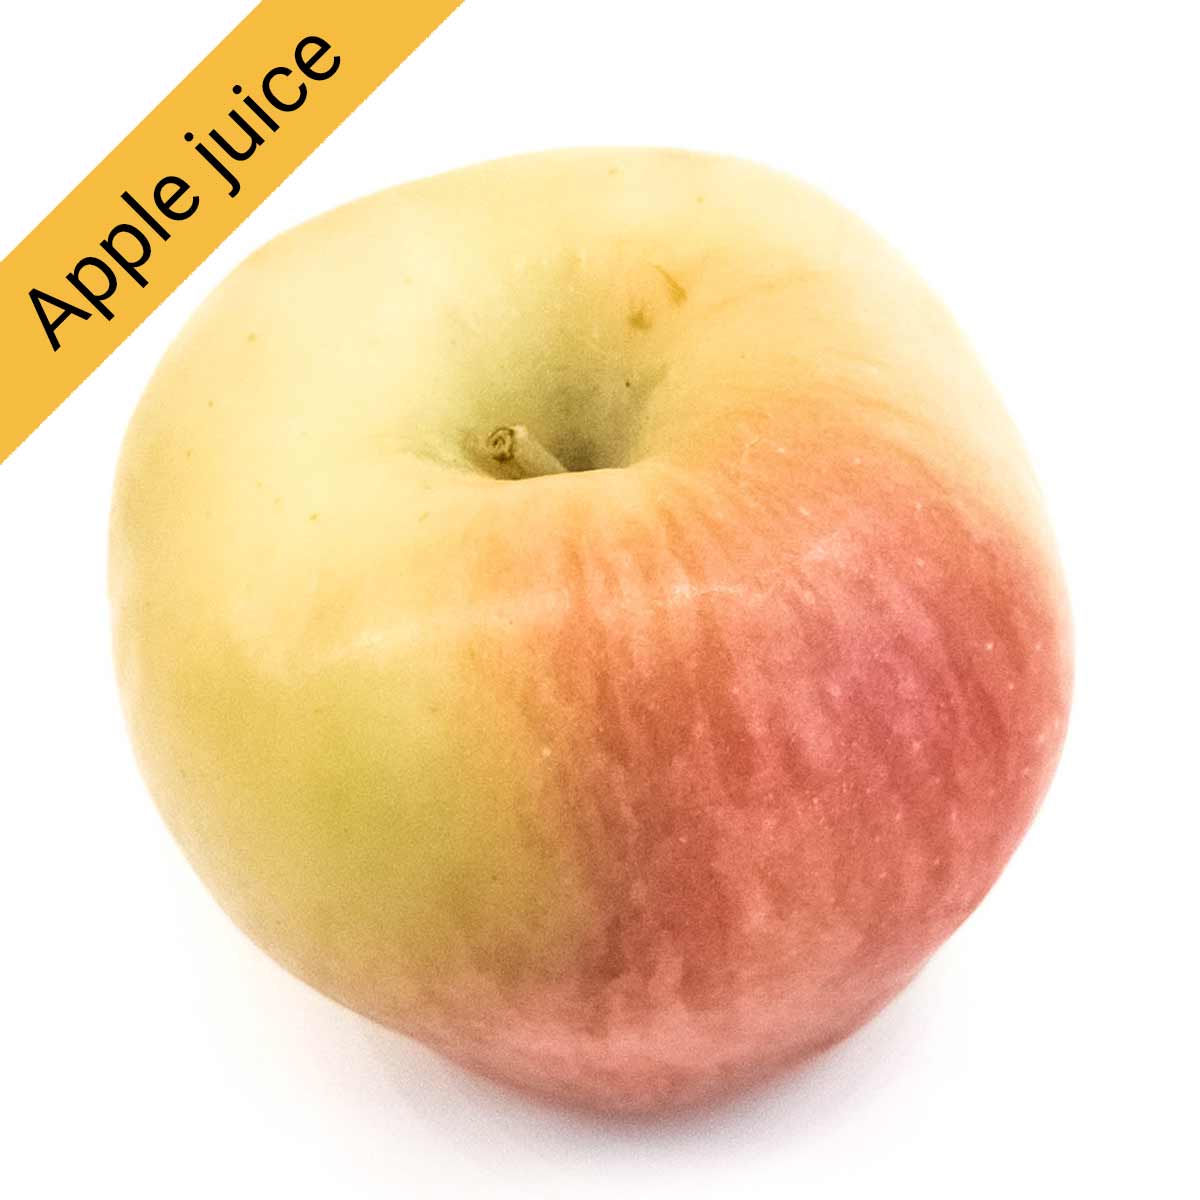 Ambrosia apple: best for juice with a floral honey flavor or even banana